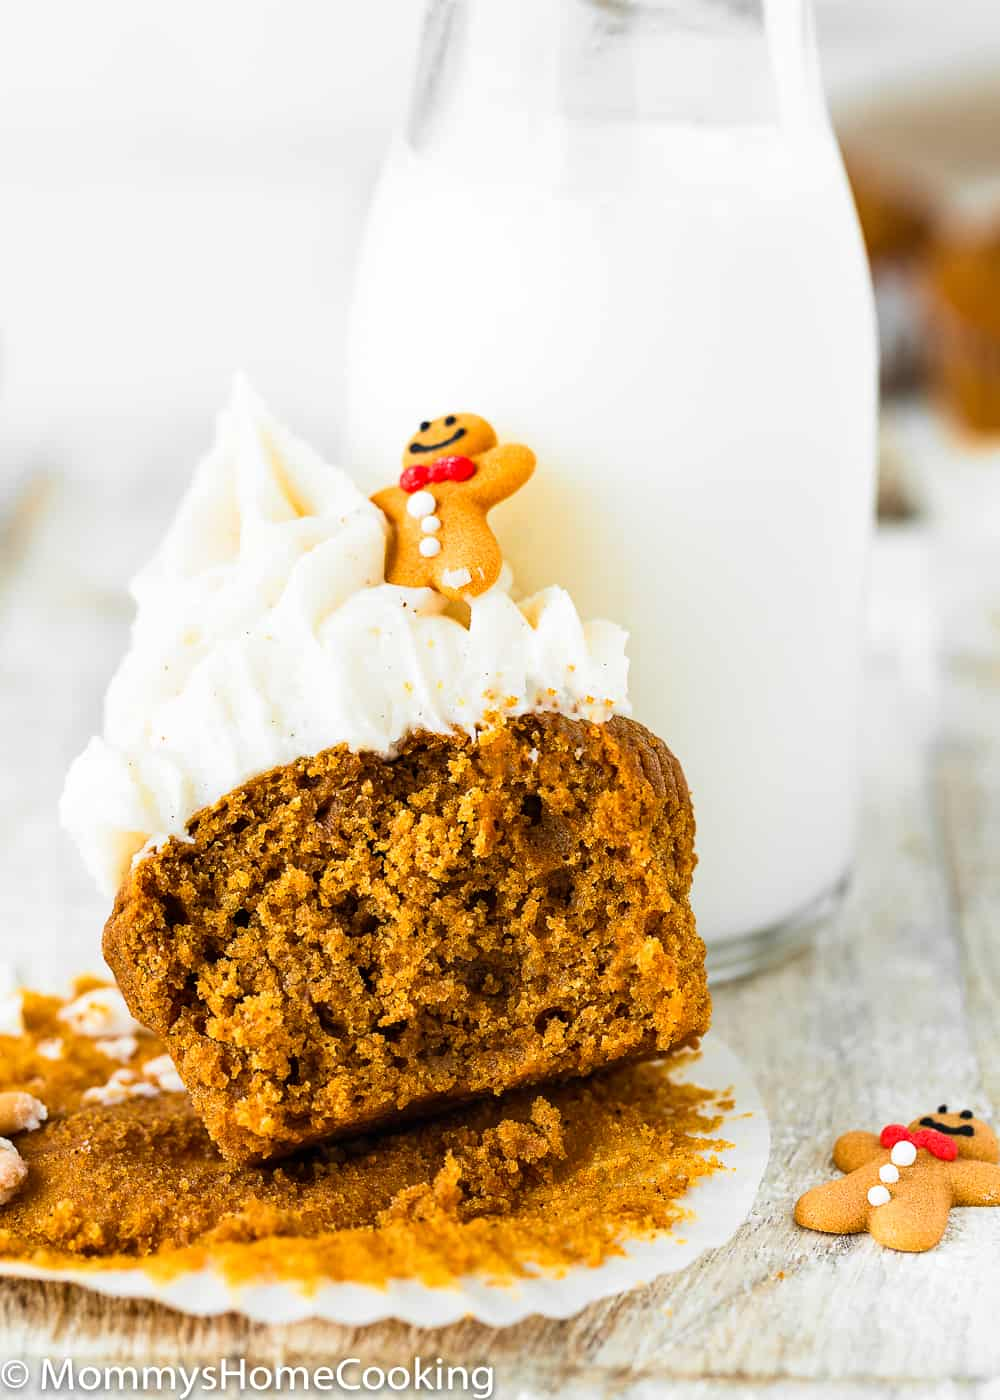 Fluffy inside of a Eggless Gingerbread Cupcake